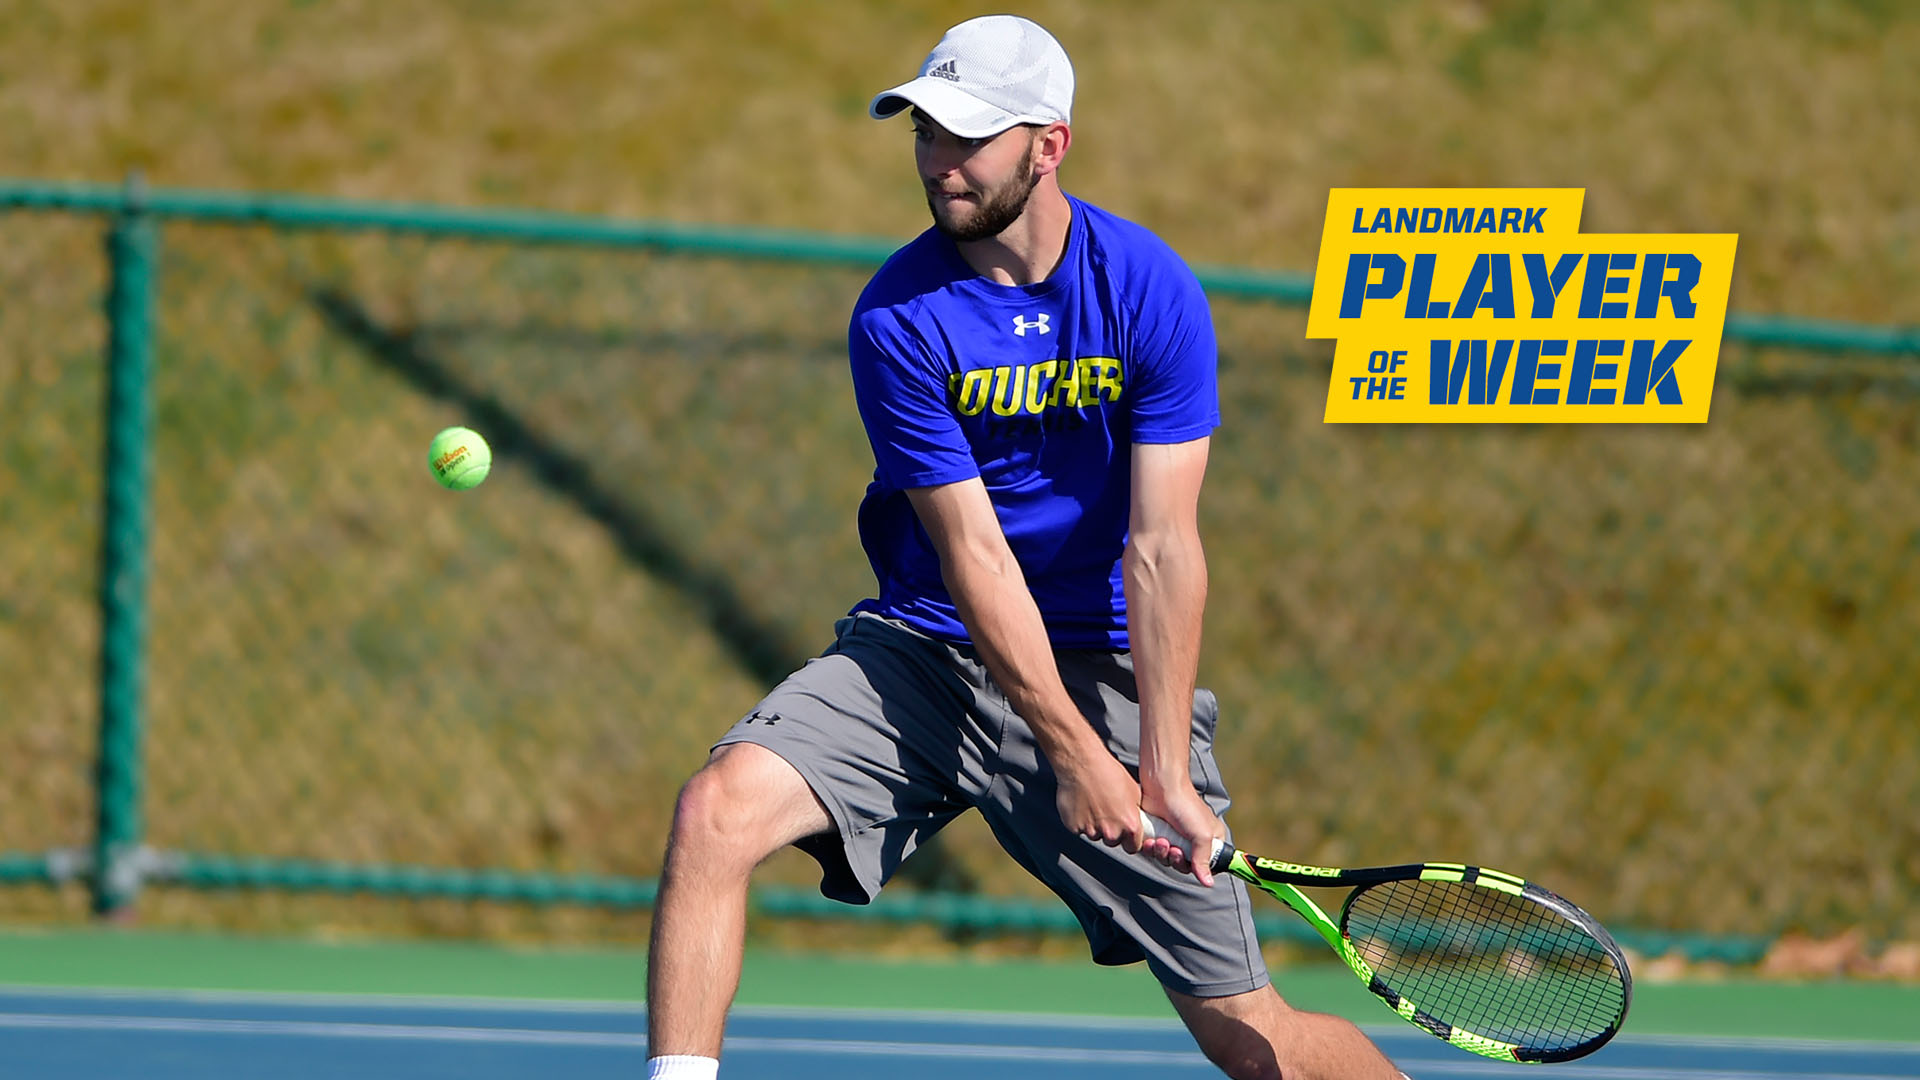 Dumas Receives Third Career Landmark Conference Men's Tennis Athlete Of The Week Recognition